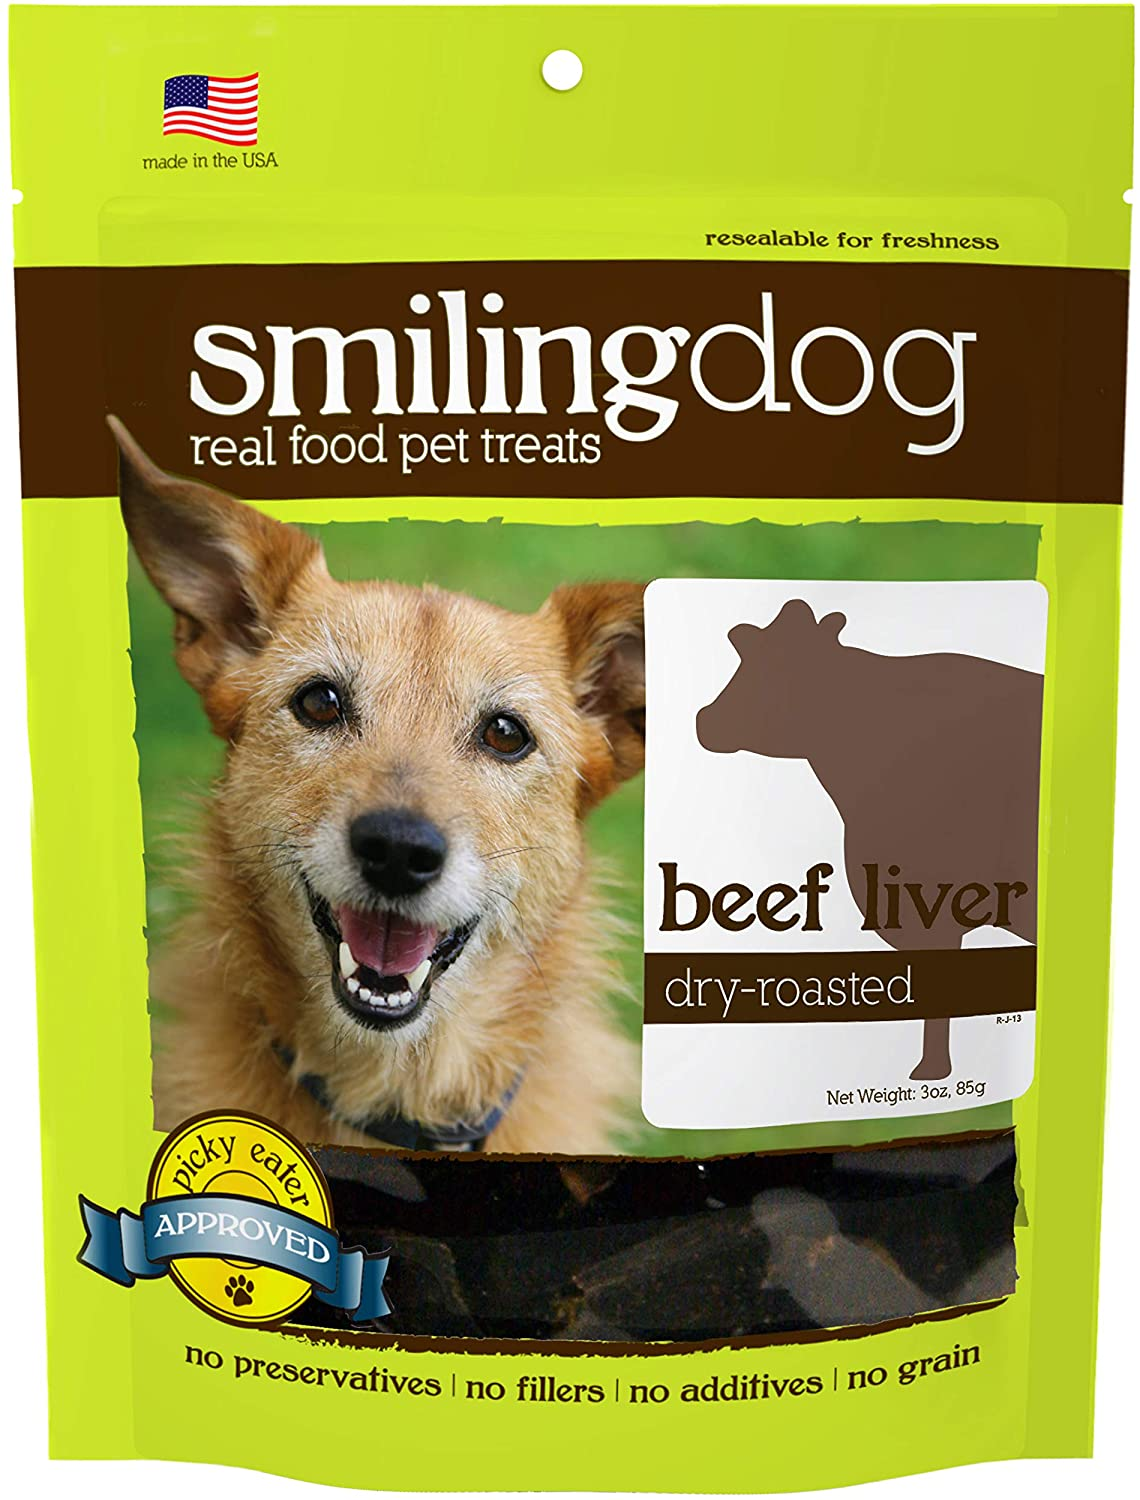 Herbsmith Smiling Dog Treats – Dry Roasted Beef Liver – That's 100% it – 3 Ounce, Single Bag of Treats